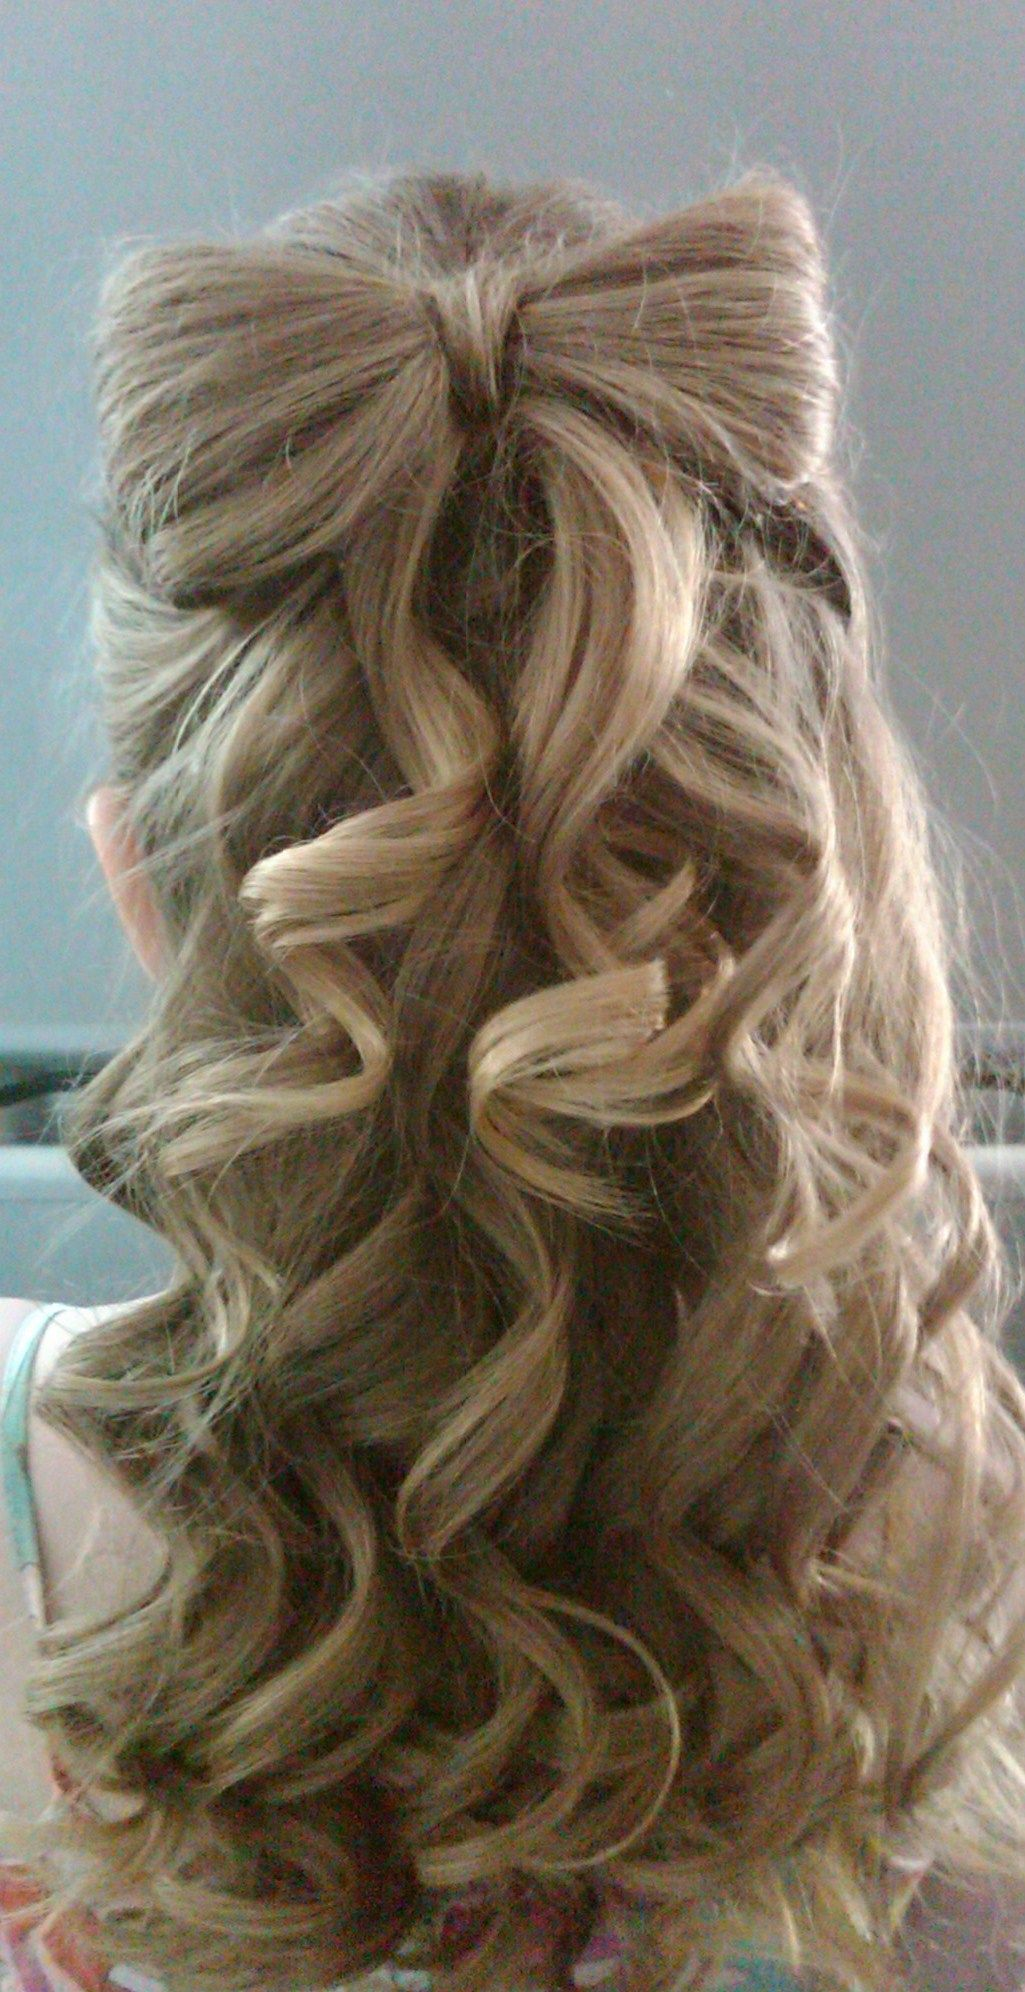 lady gaga hair style curly light blonde & yellow full wigs